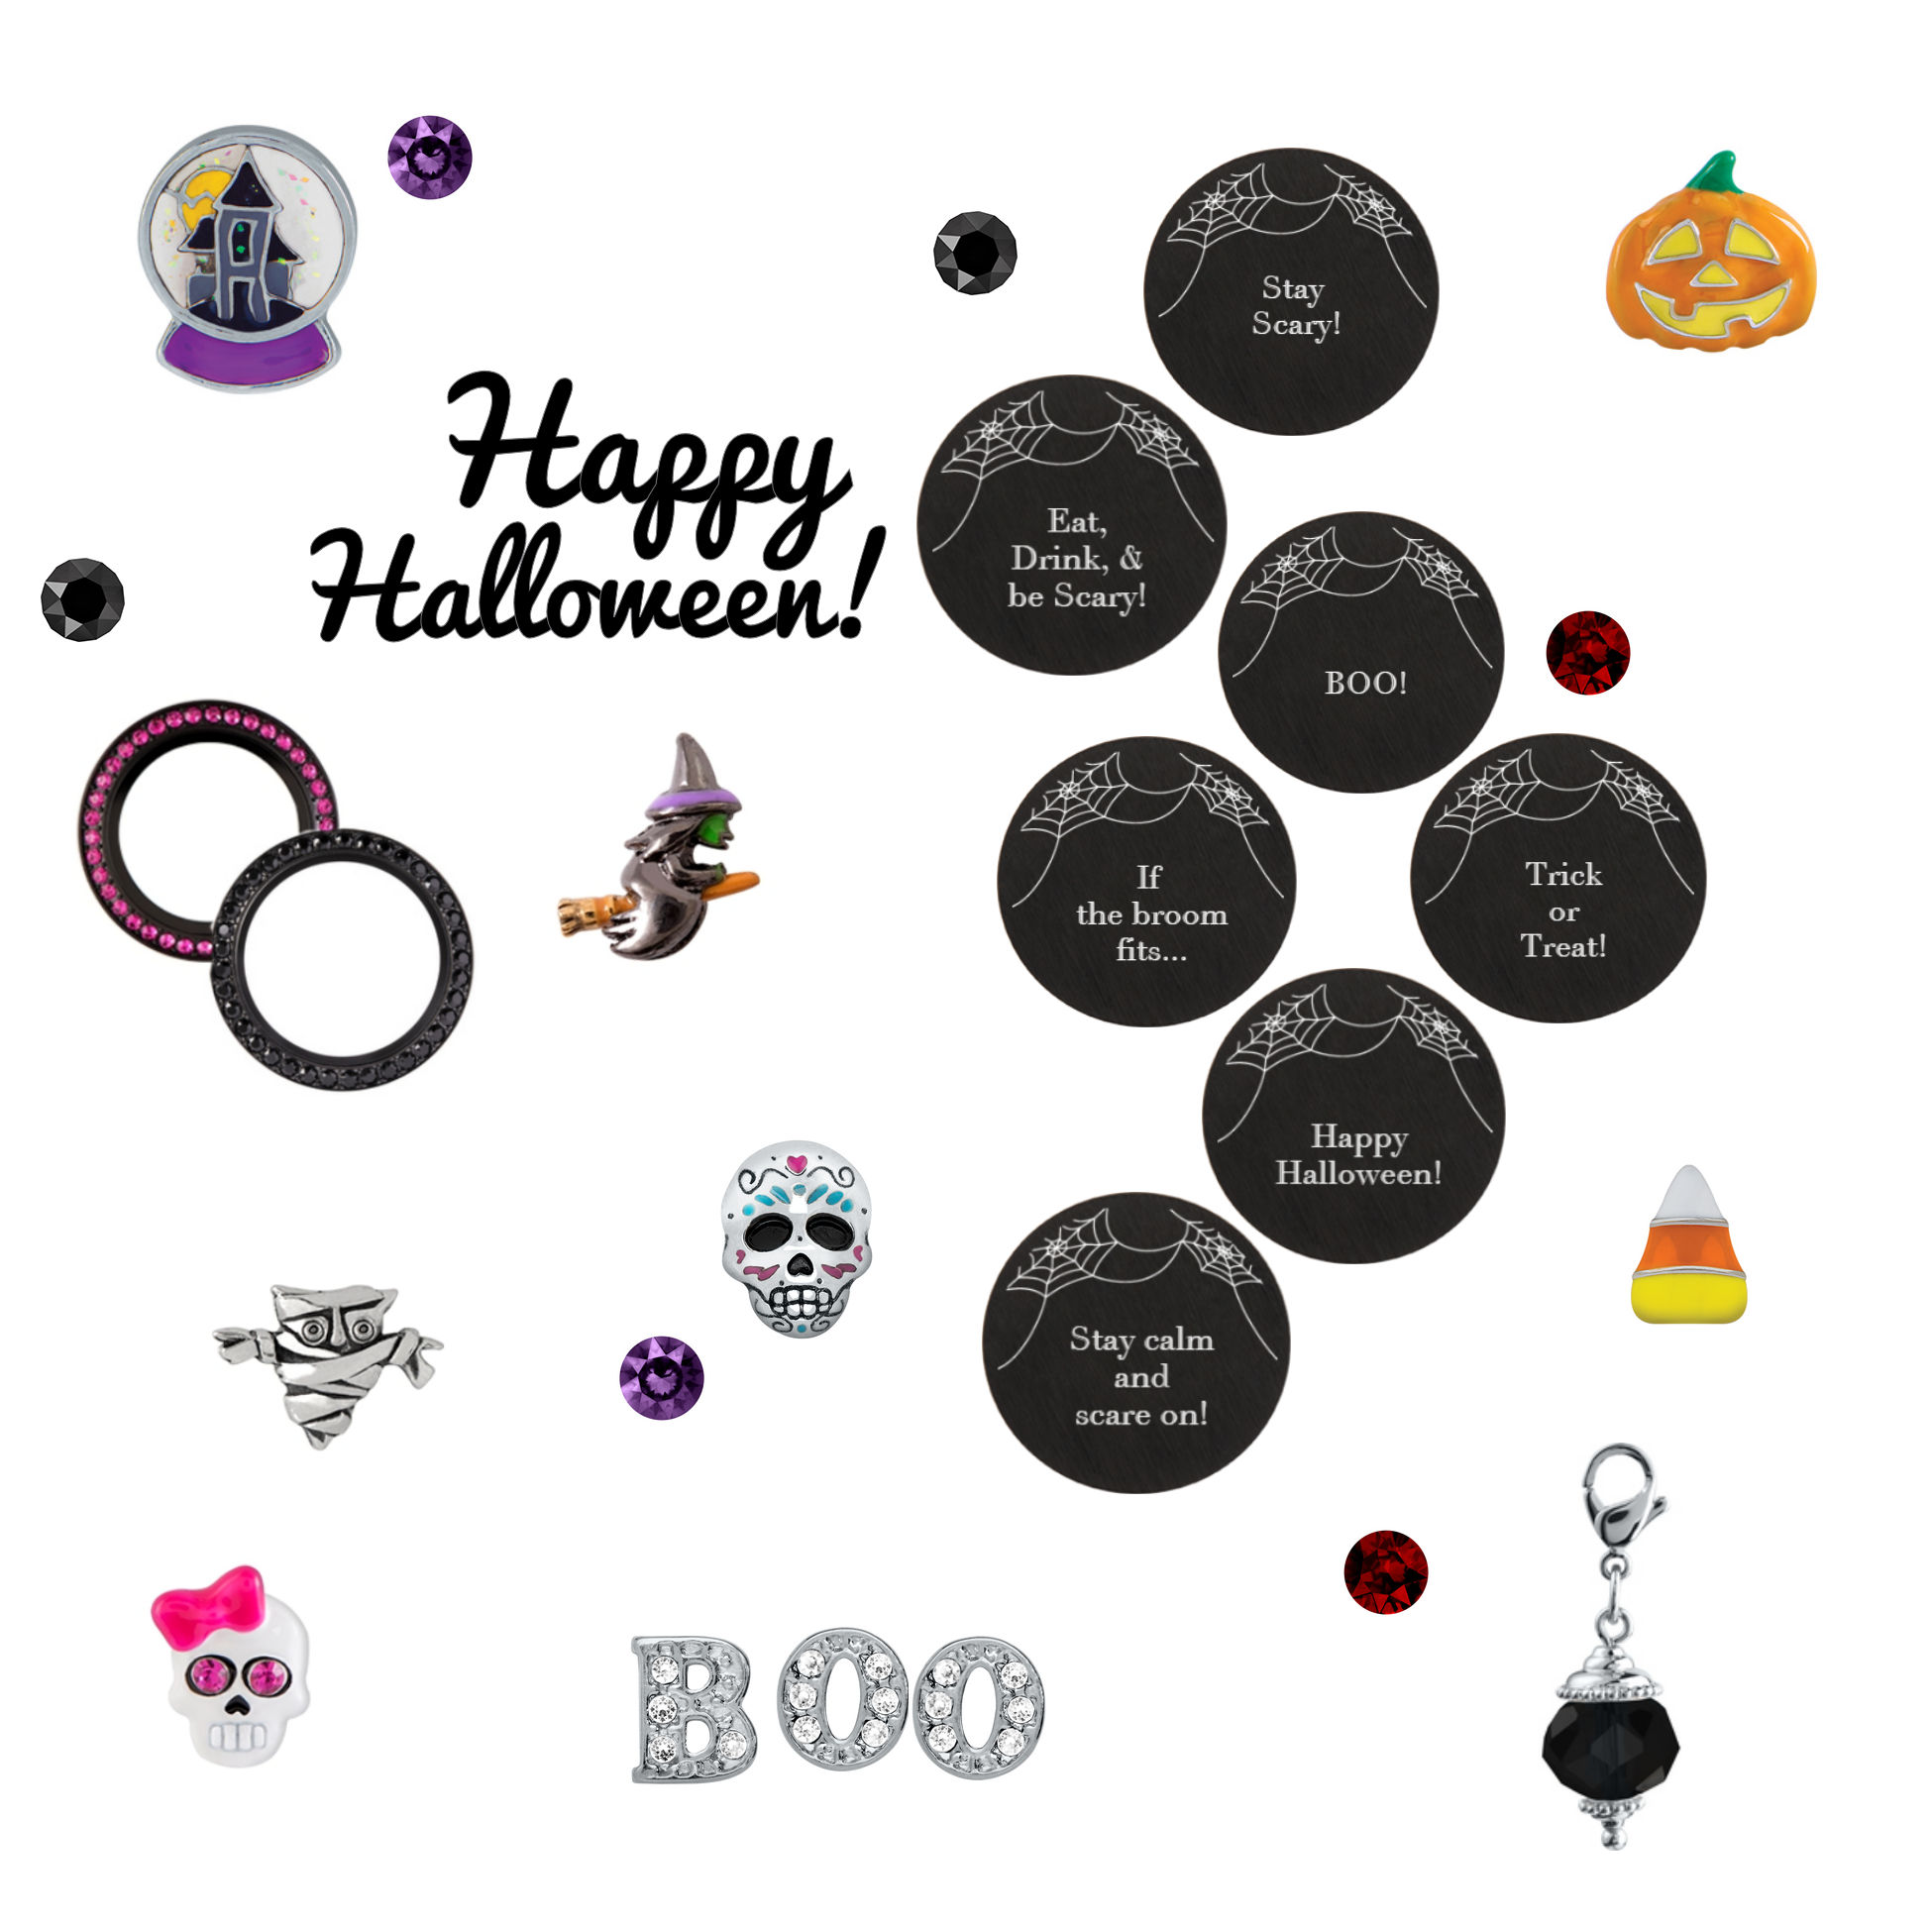 Last night of summer the chronicles of lady octavia halloween origami owl inscriptions charms jeuxipadfo Gallery